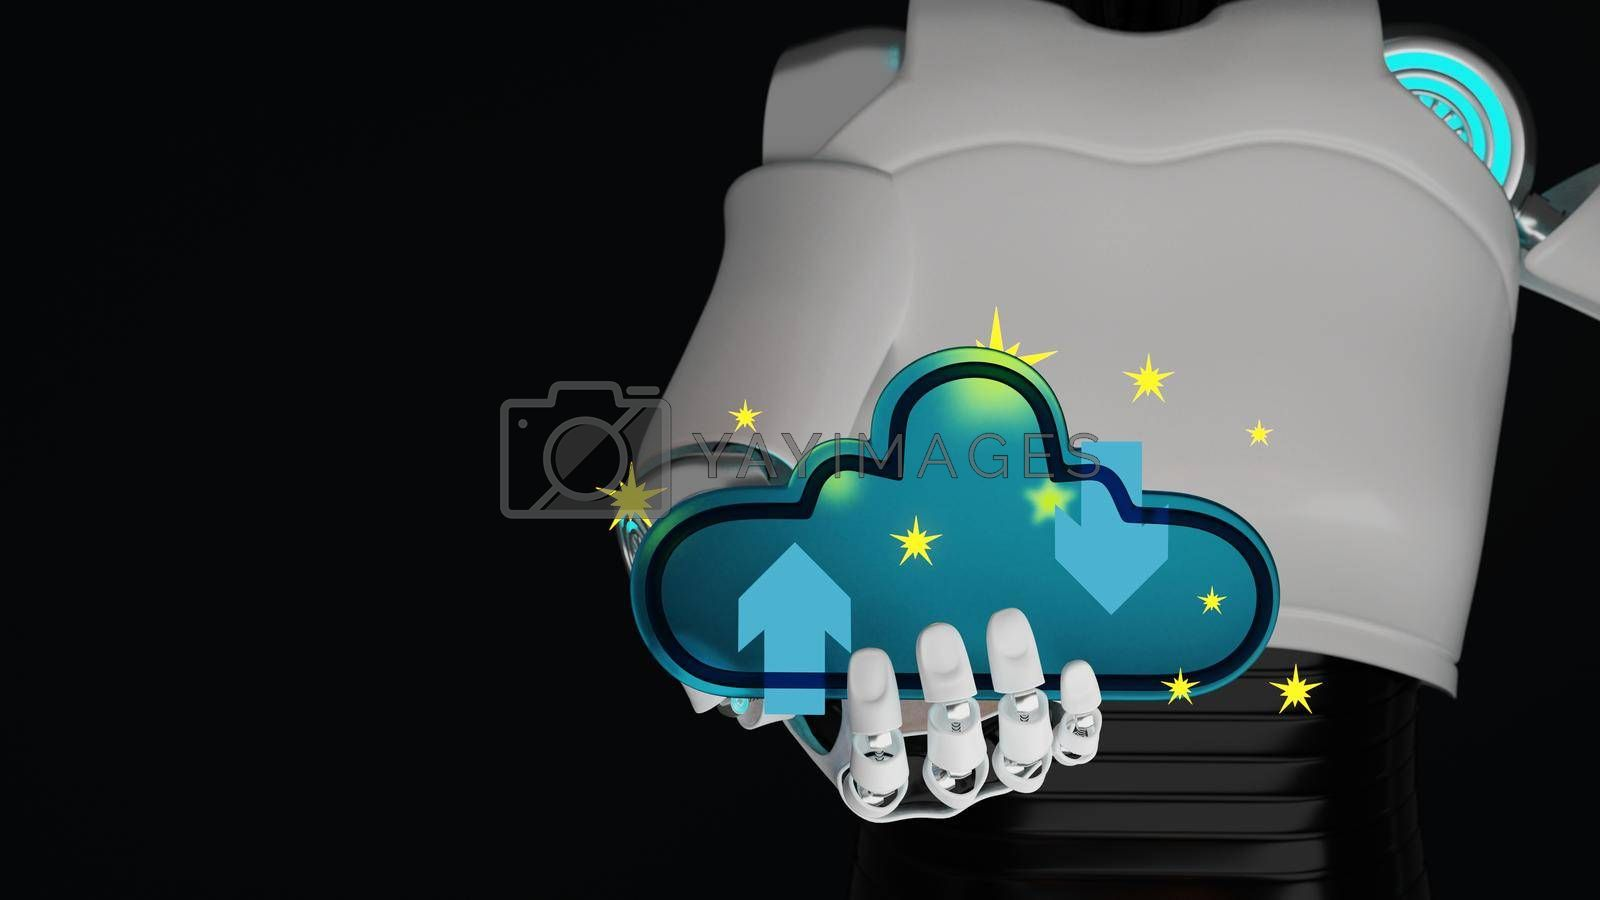 Royalty free image of Blue glass cloud on hand of cyborg with yellow star by eaglesky